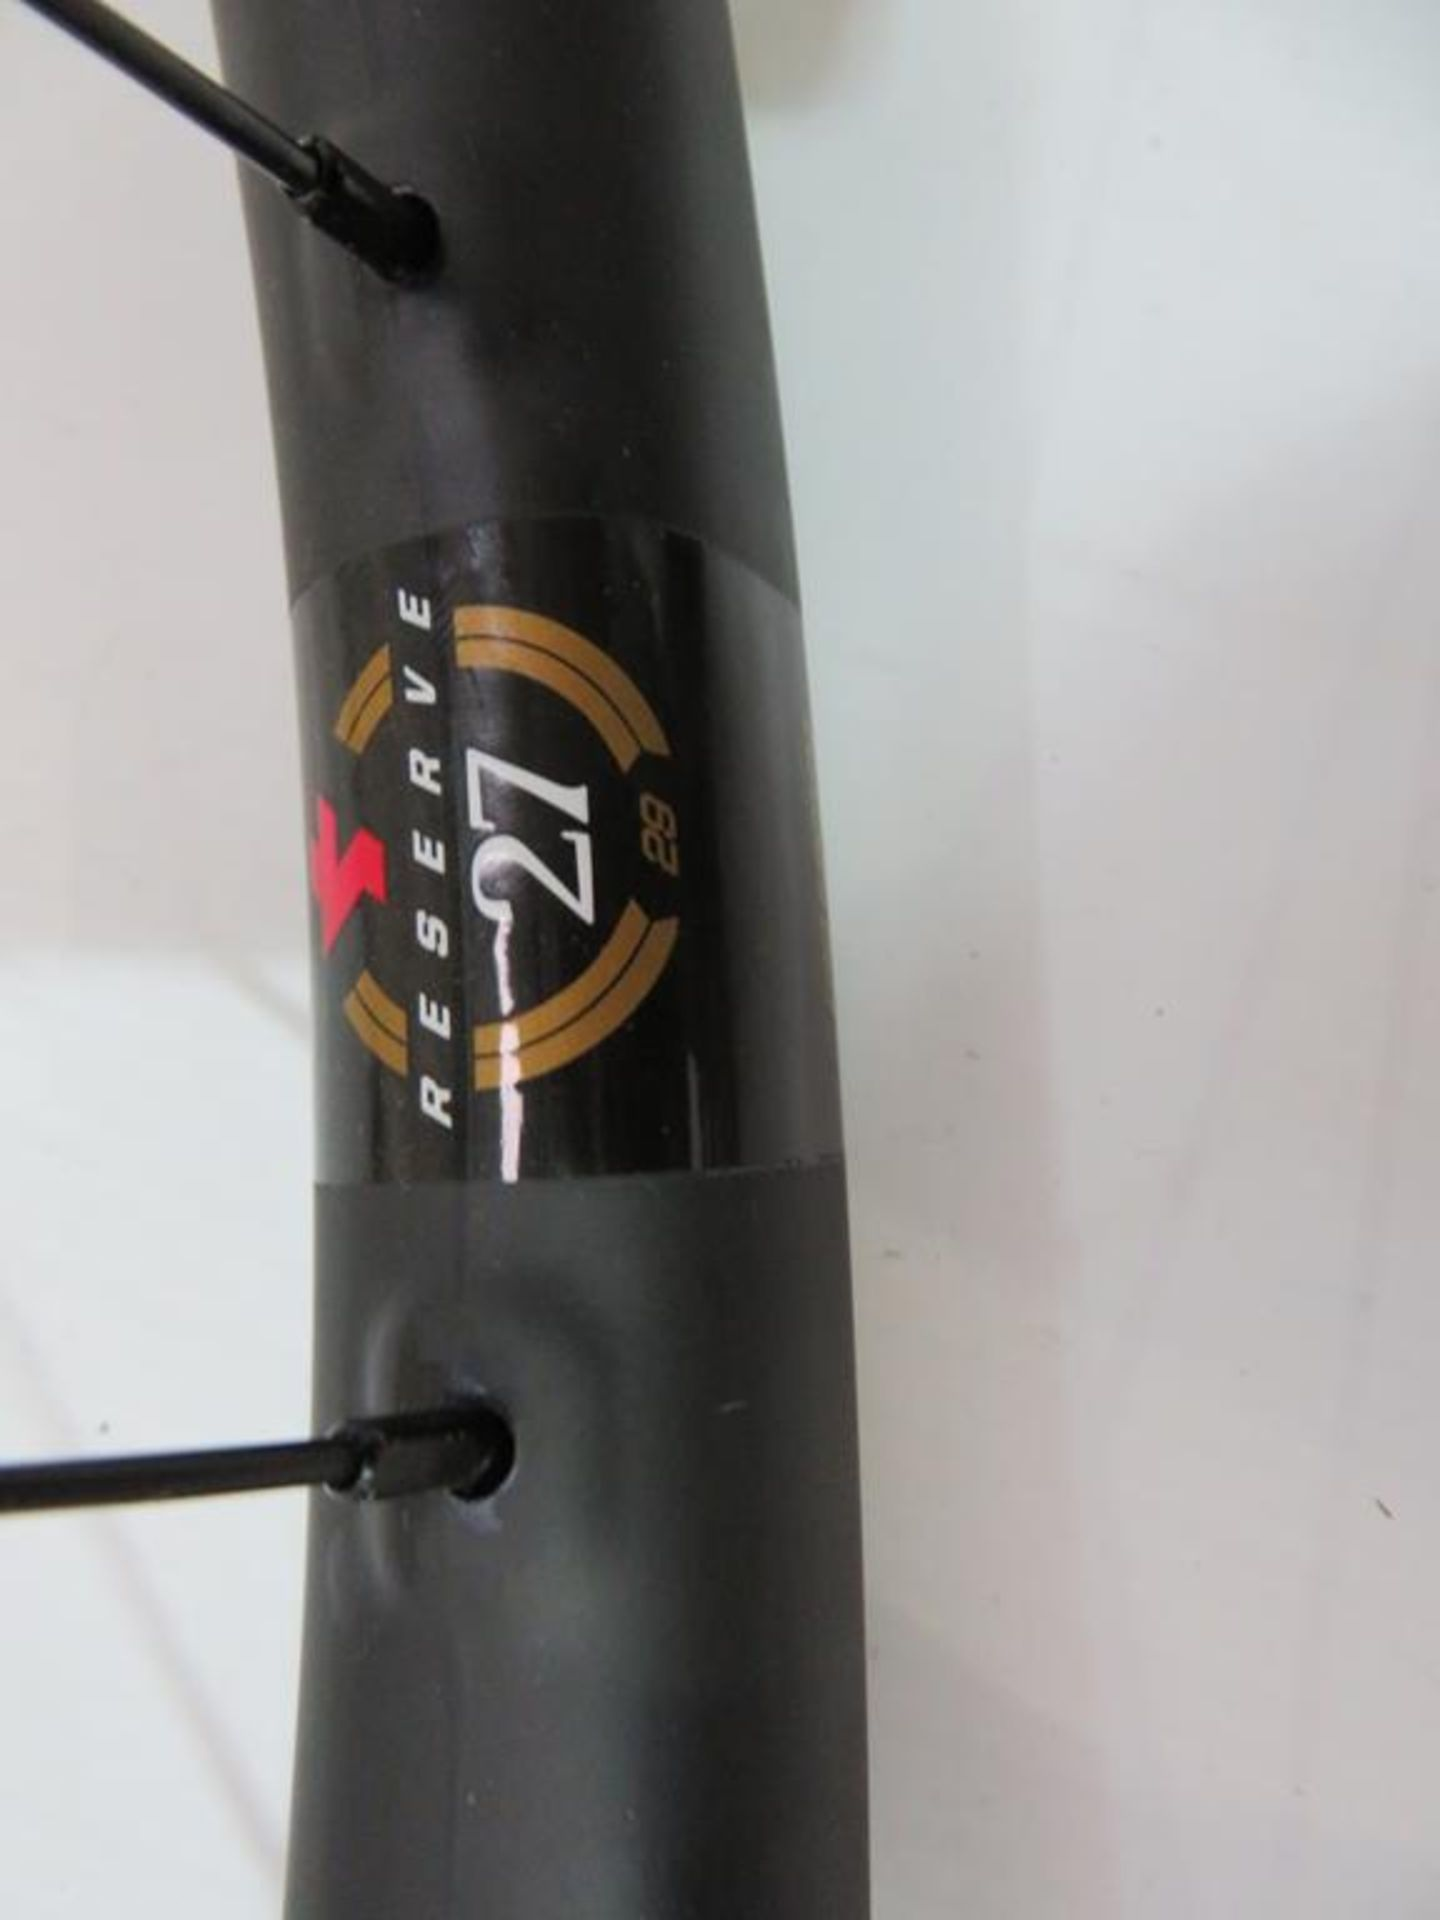 Lot 10 - Santa Cruz Reserve 27 Carbon Wheelset with DT Swiss 350 Hubs